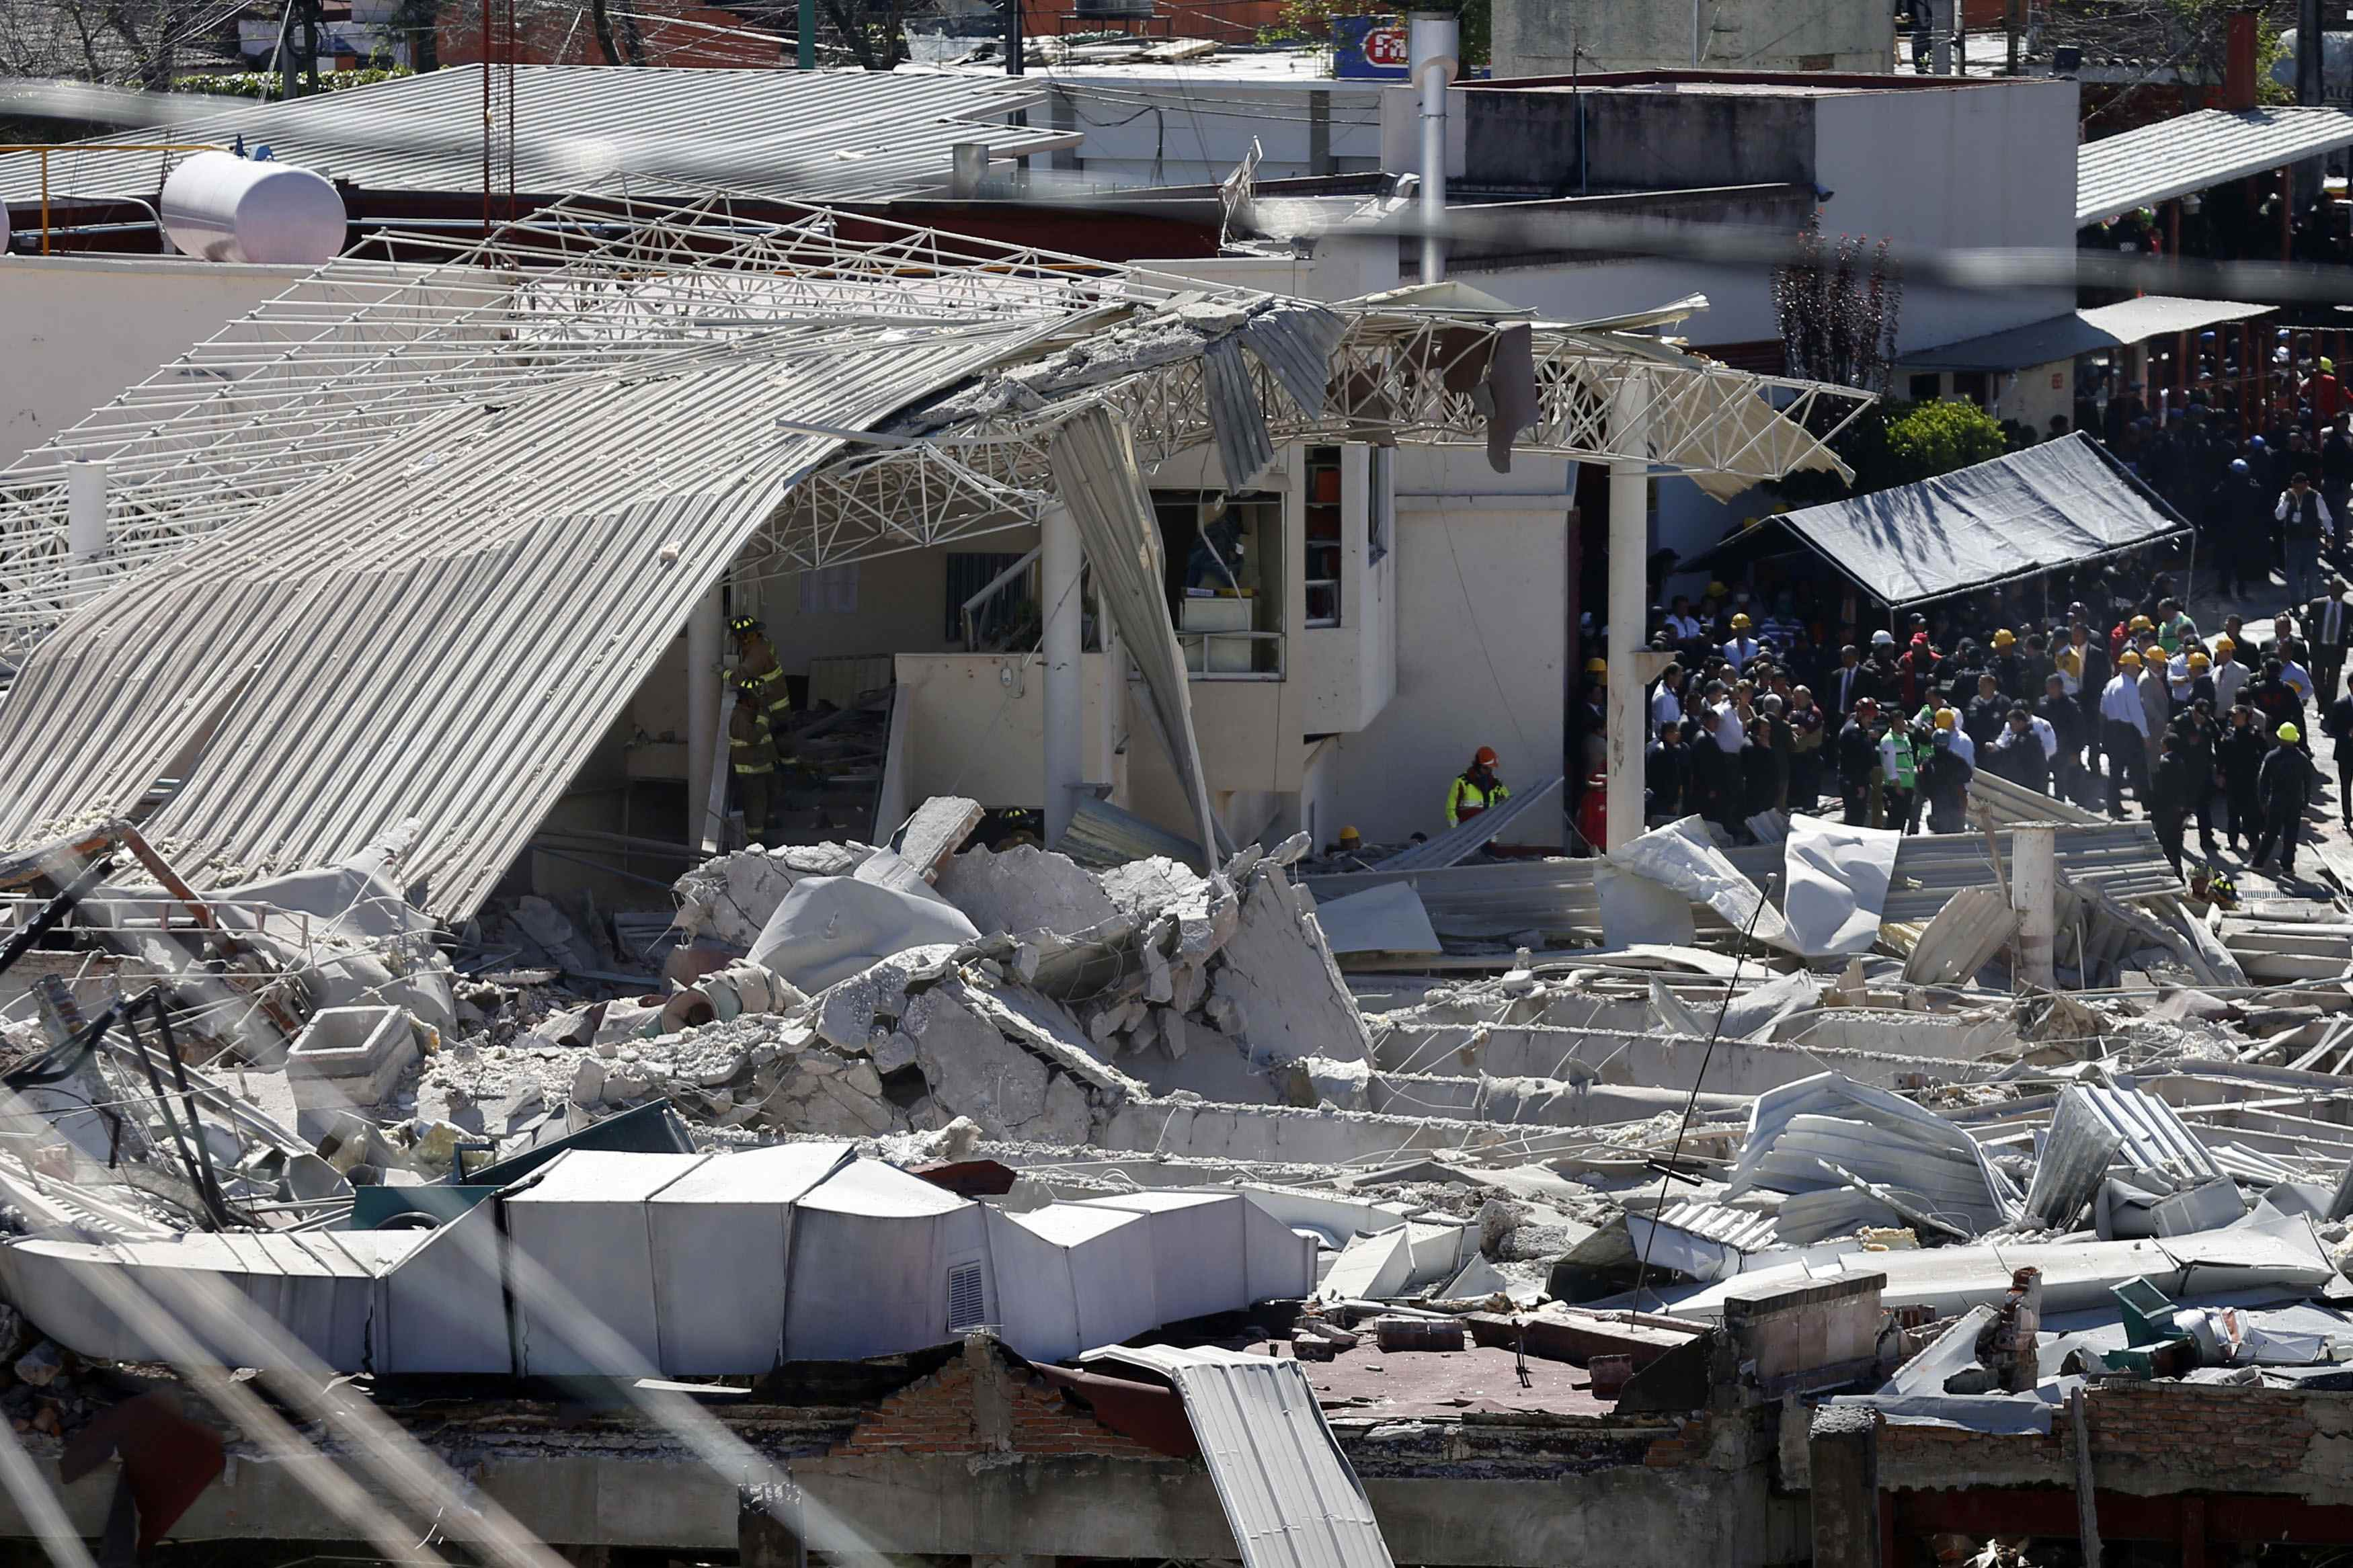 Gas blast at Mexico children's hospital, at least 2 dead